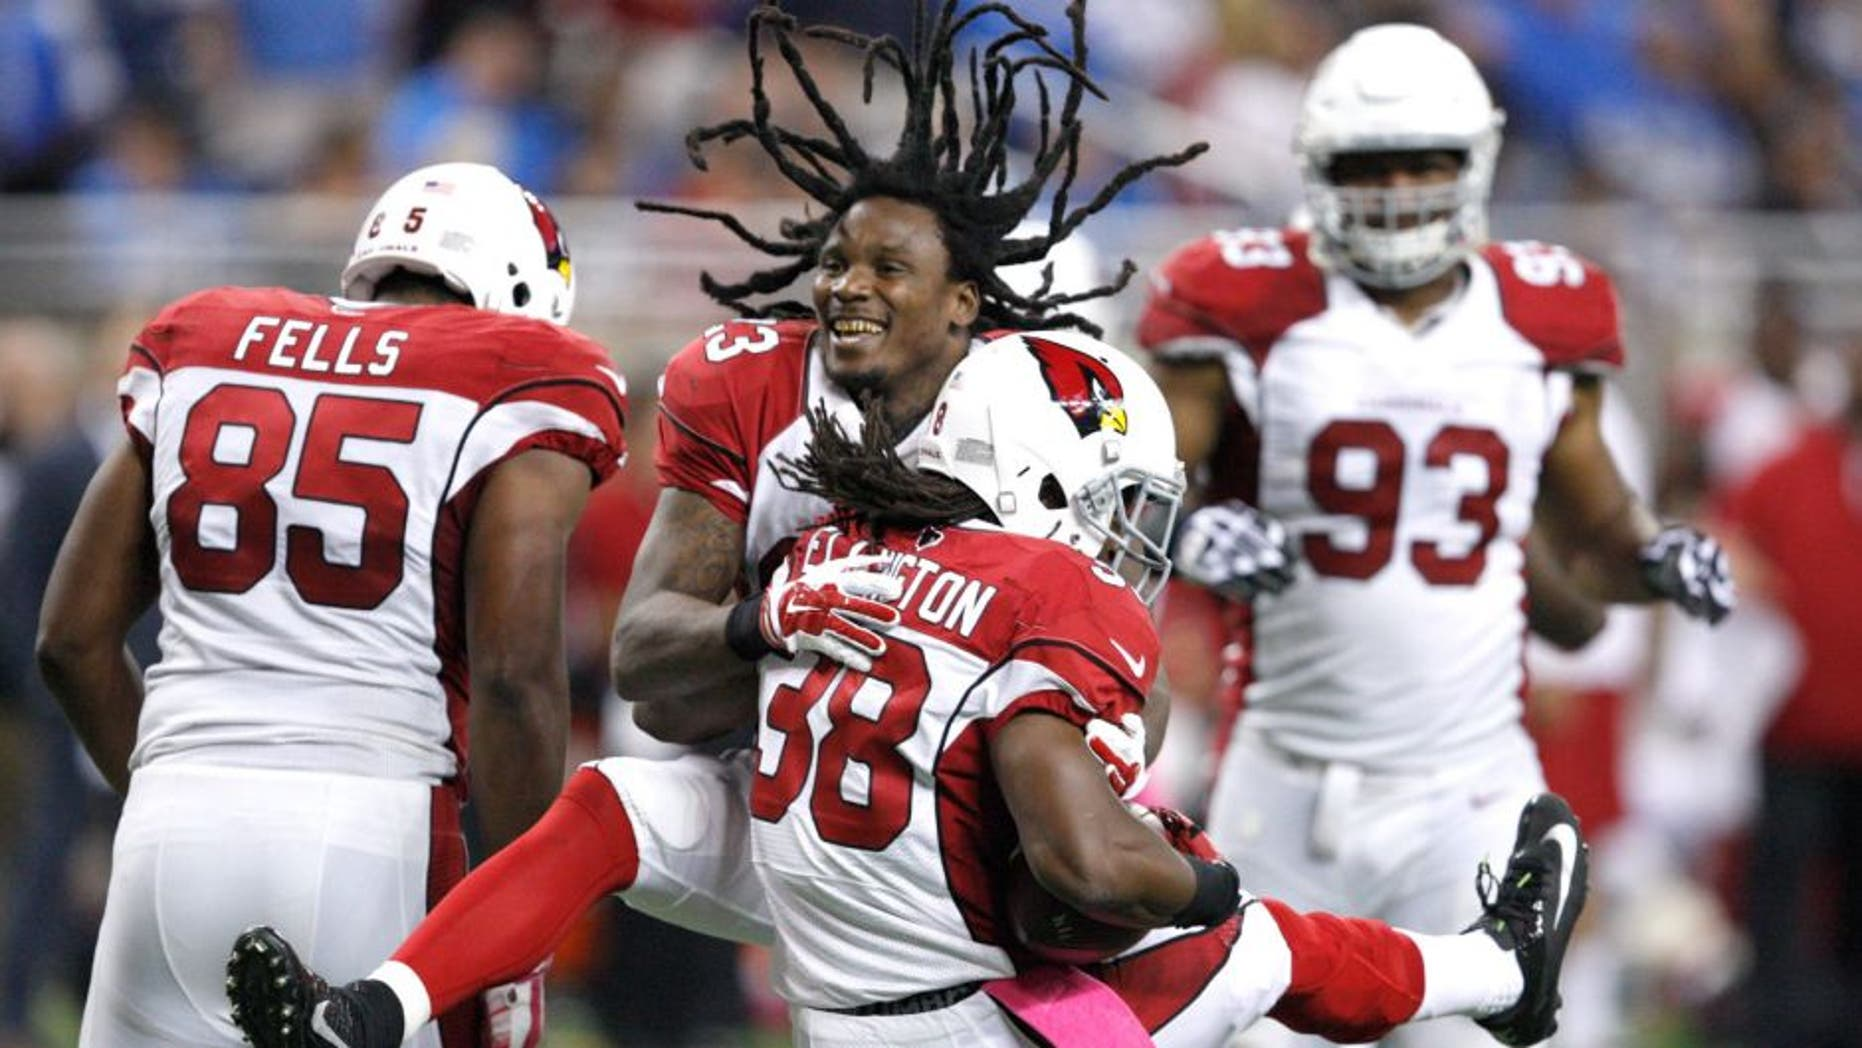 Oct 11, 2015; Detroit, MI, USA; Arizona Cardinals running back Andre Ellington (38) celebrates with running back Chris Johnson (23) after a touchdown during the fourth quarter against the Detroit Lions at Ford Field. Cardinals won 42-17. Mandatory Credit: Raj Mehta-USA TODAY Sports